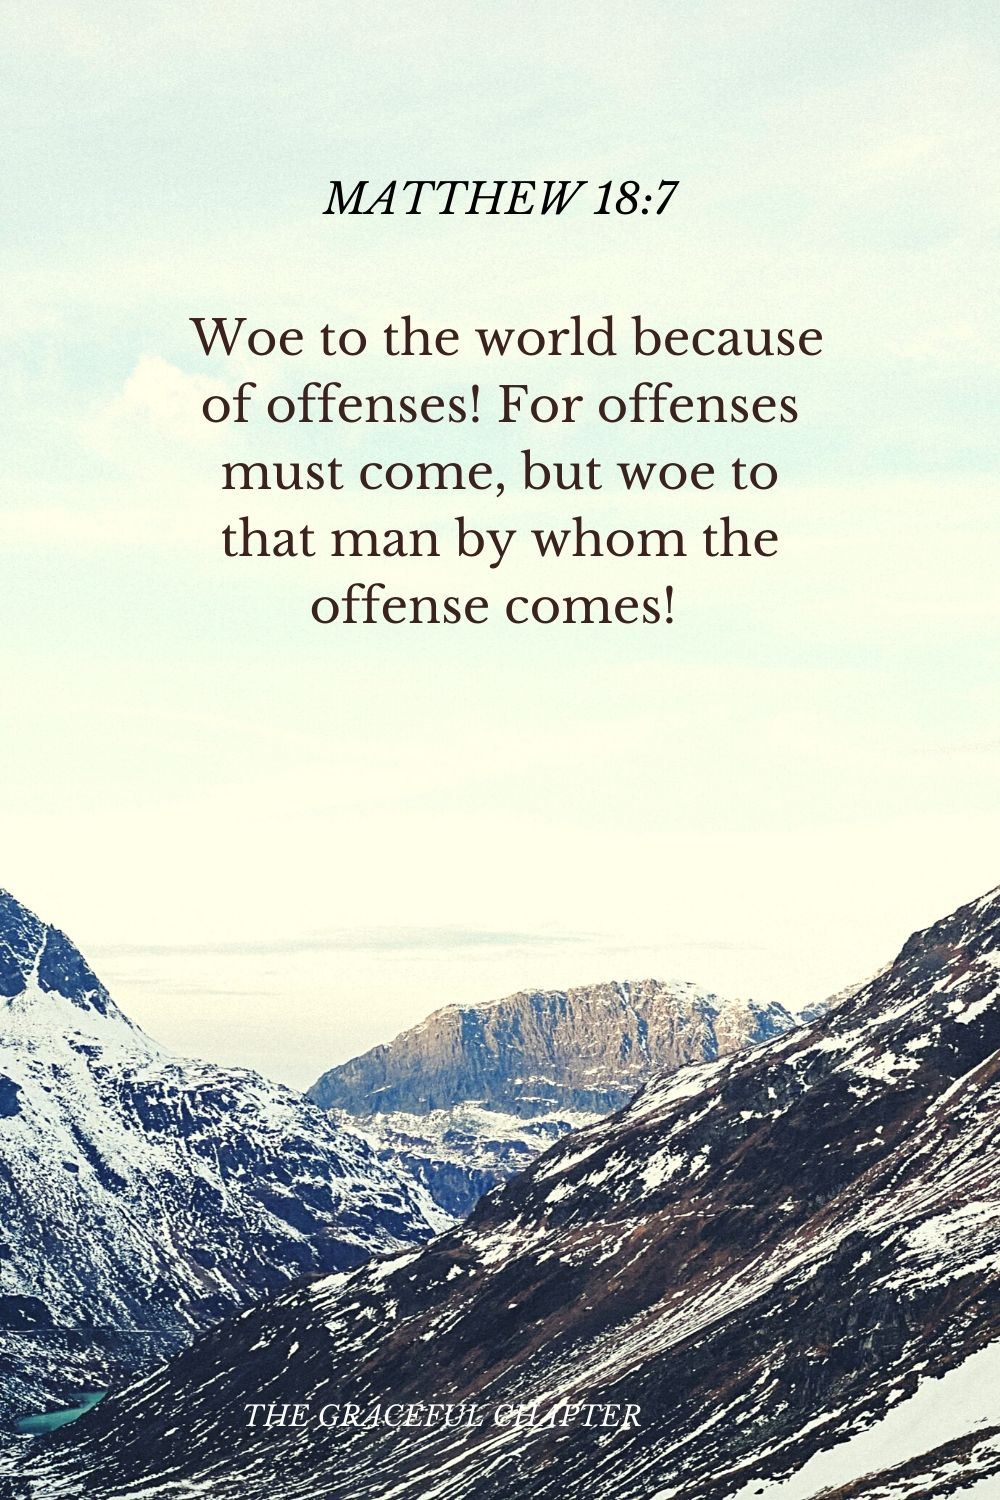 Woe to the world because of offenses! For offenses must come, but woe to that man by whom the offense comes!  Matthew 18:7